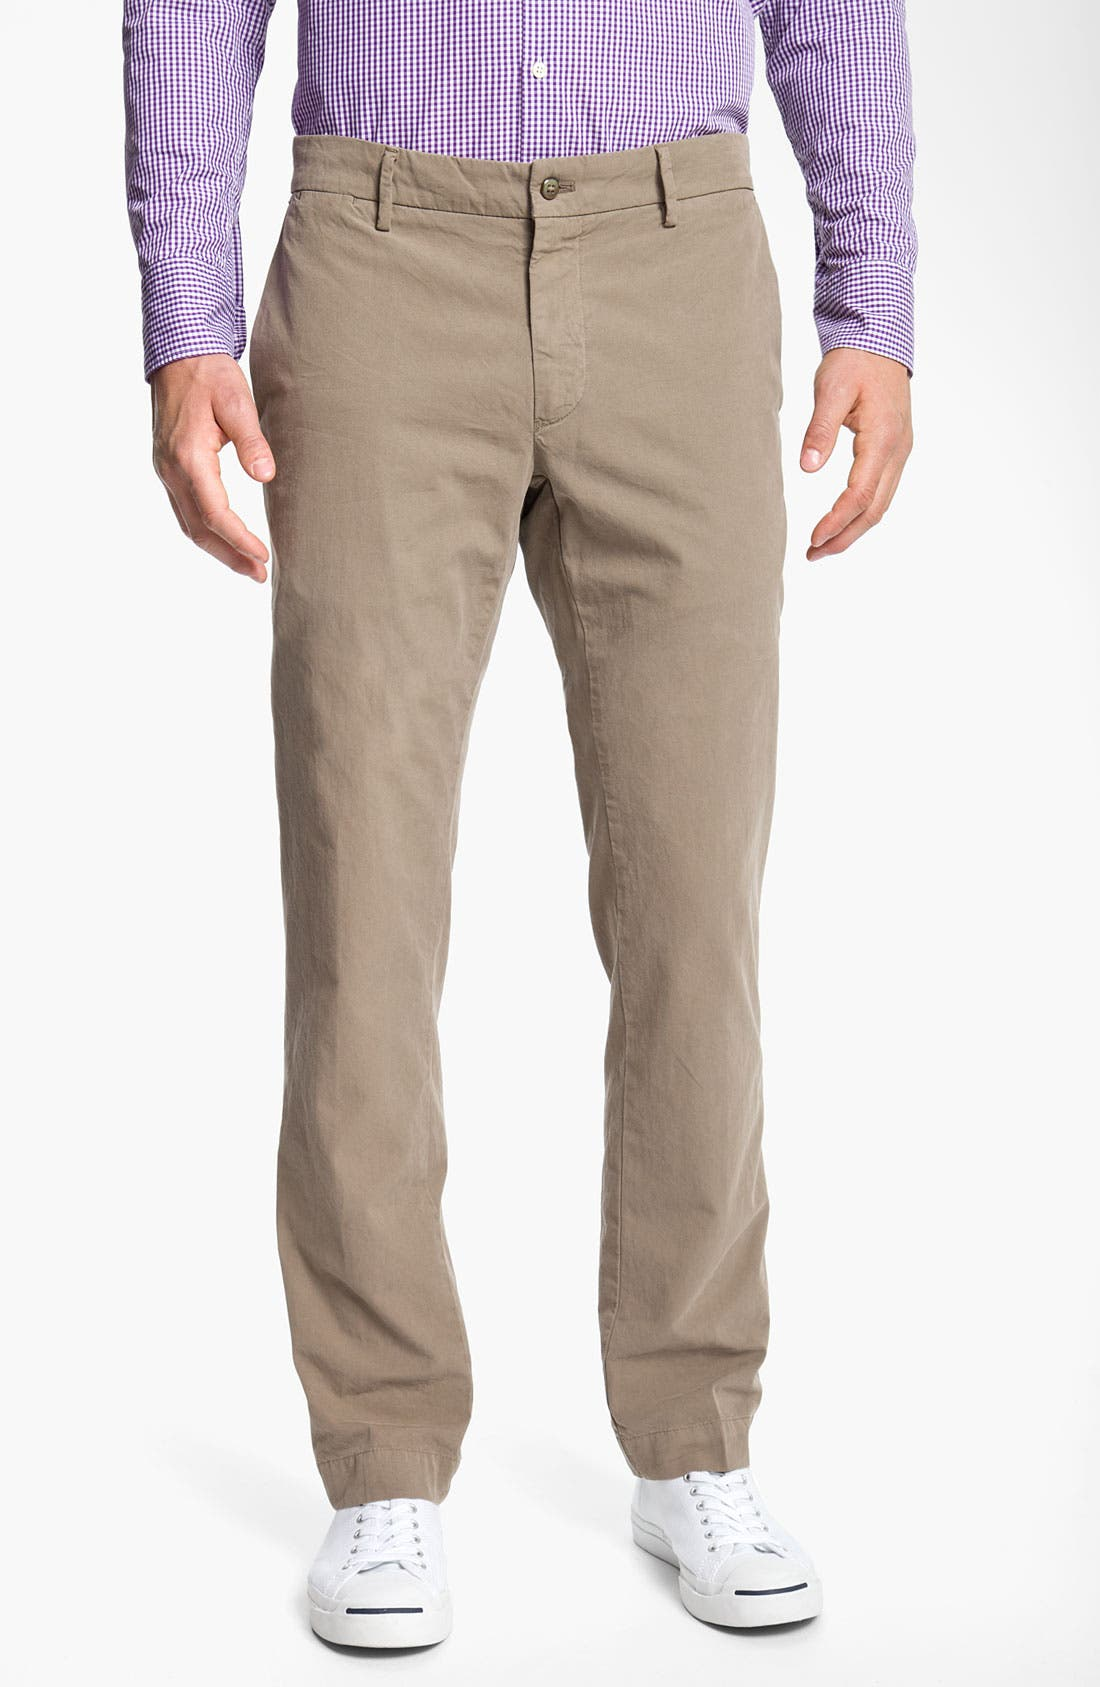 Alternate Image 1 Selected - Mason's Flat Front Slim Leg Cotton Pants